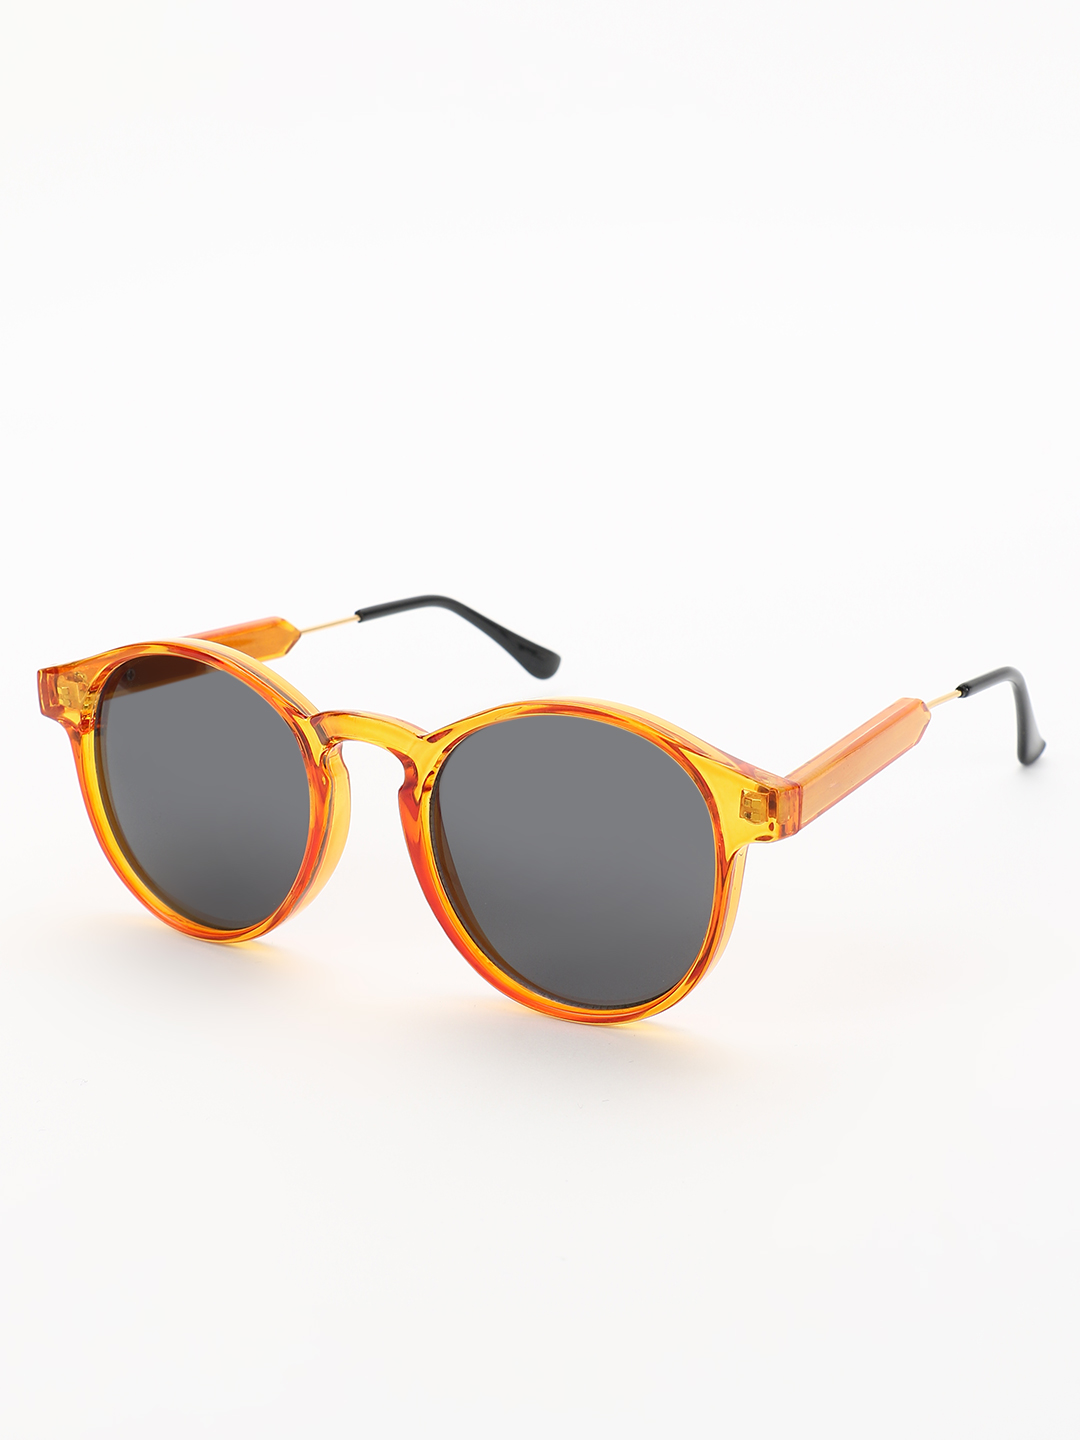 Sneak-a-Peek Yellow Coloured Frame Round Sunglasses 1